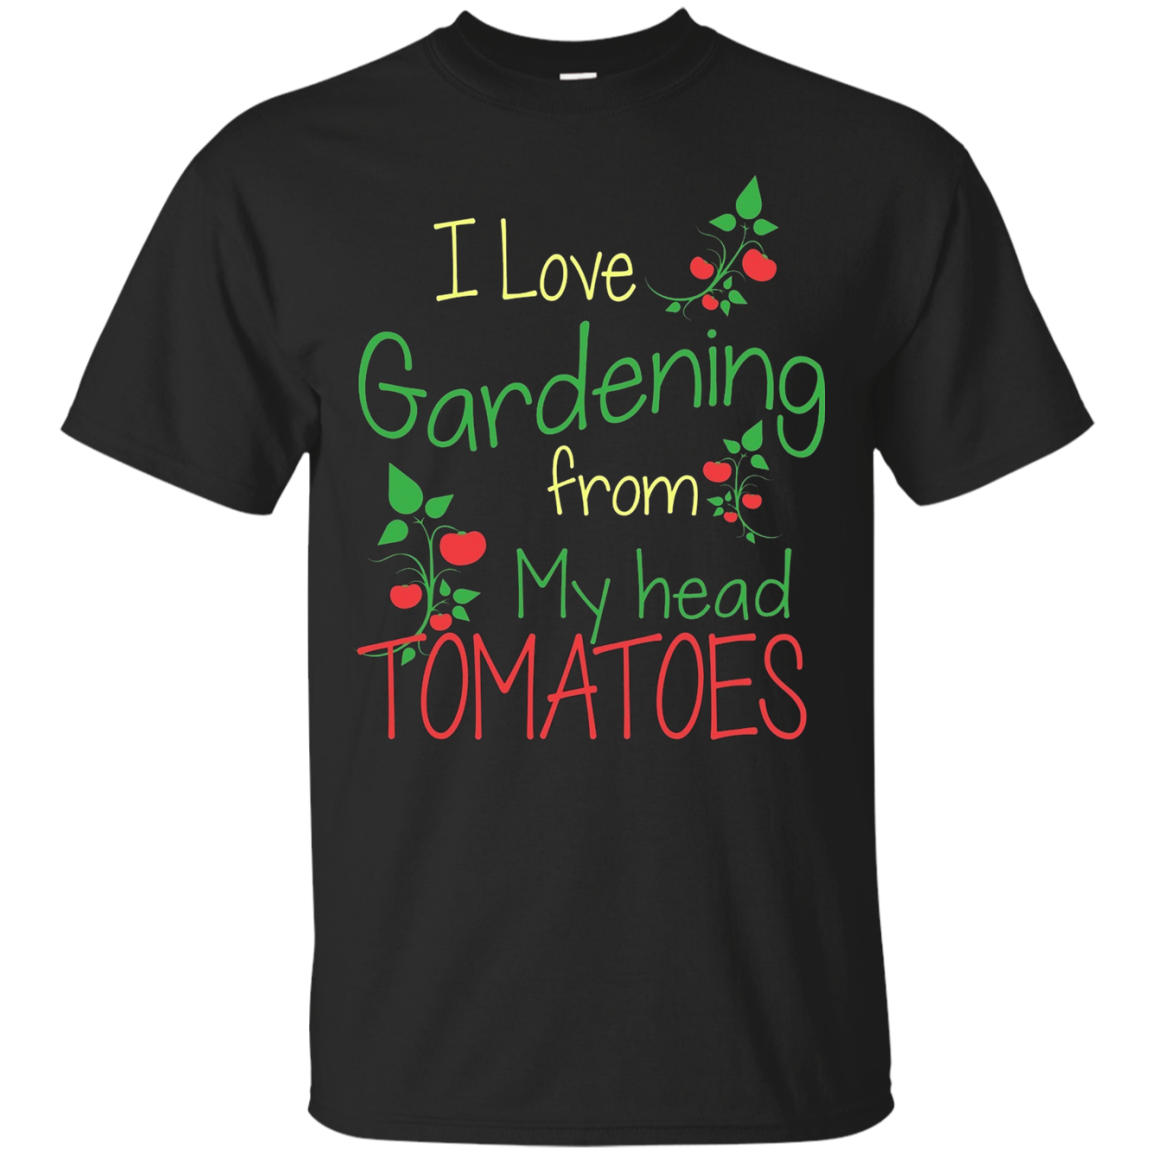 I Love Gardening From My Head Tomatoes - Gardening T-shirts - T-Shirt